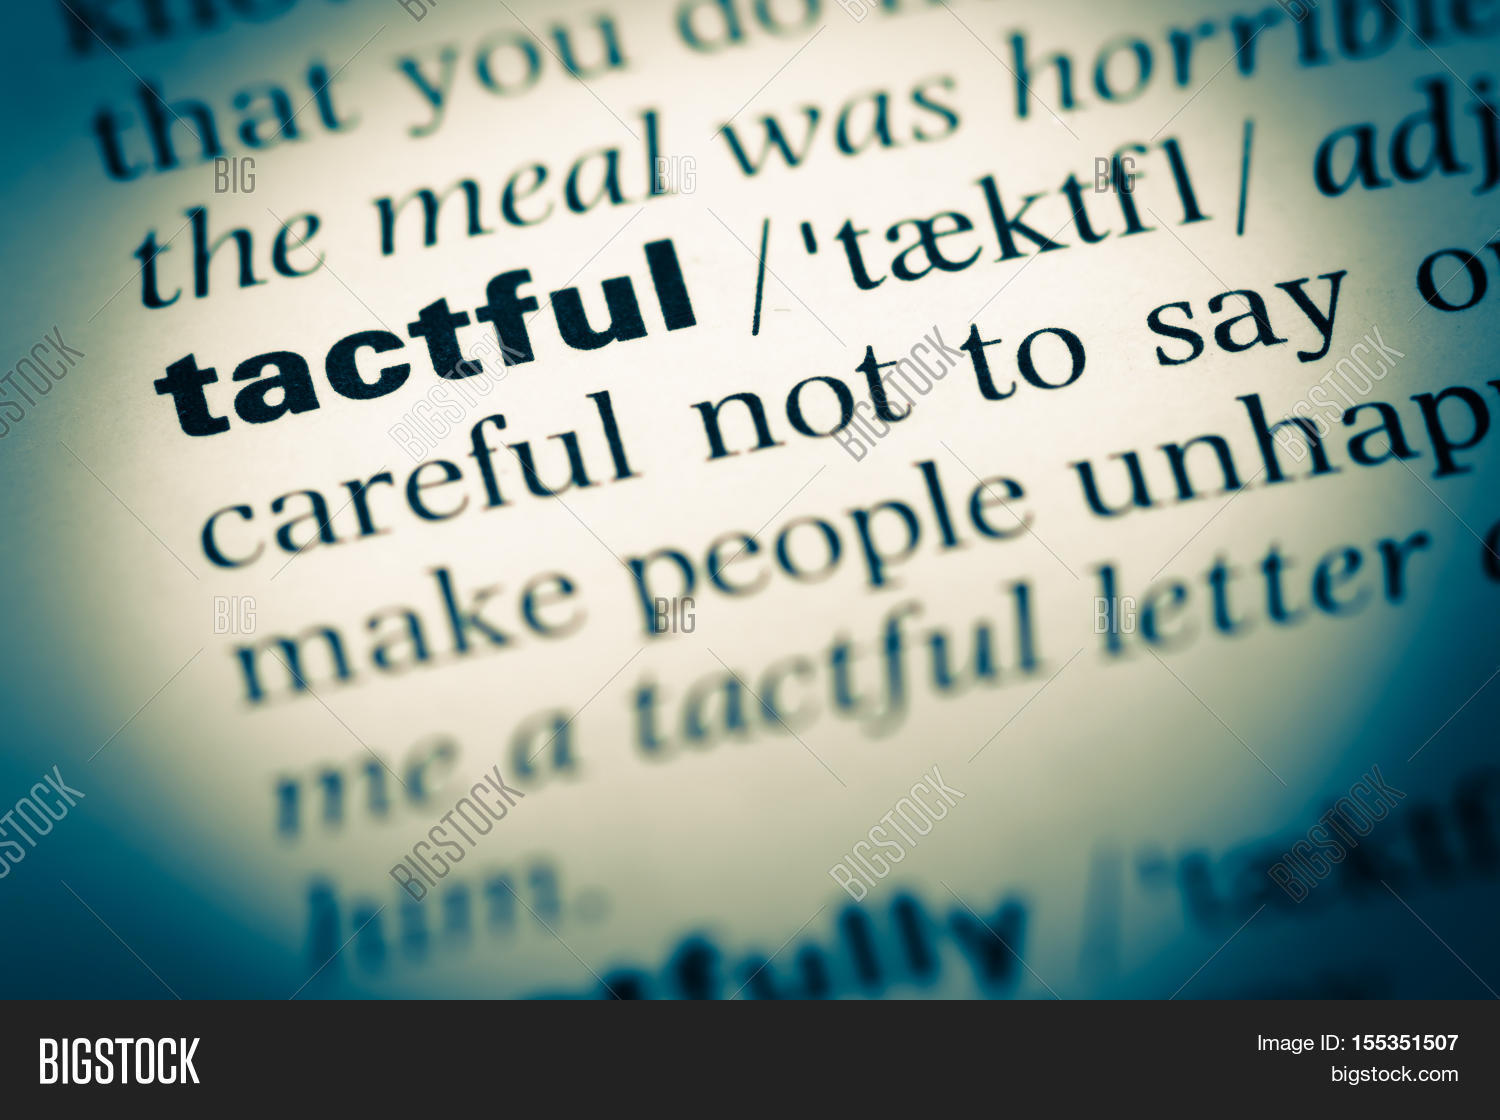 What is tactful meaning of the word 30